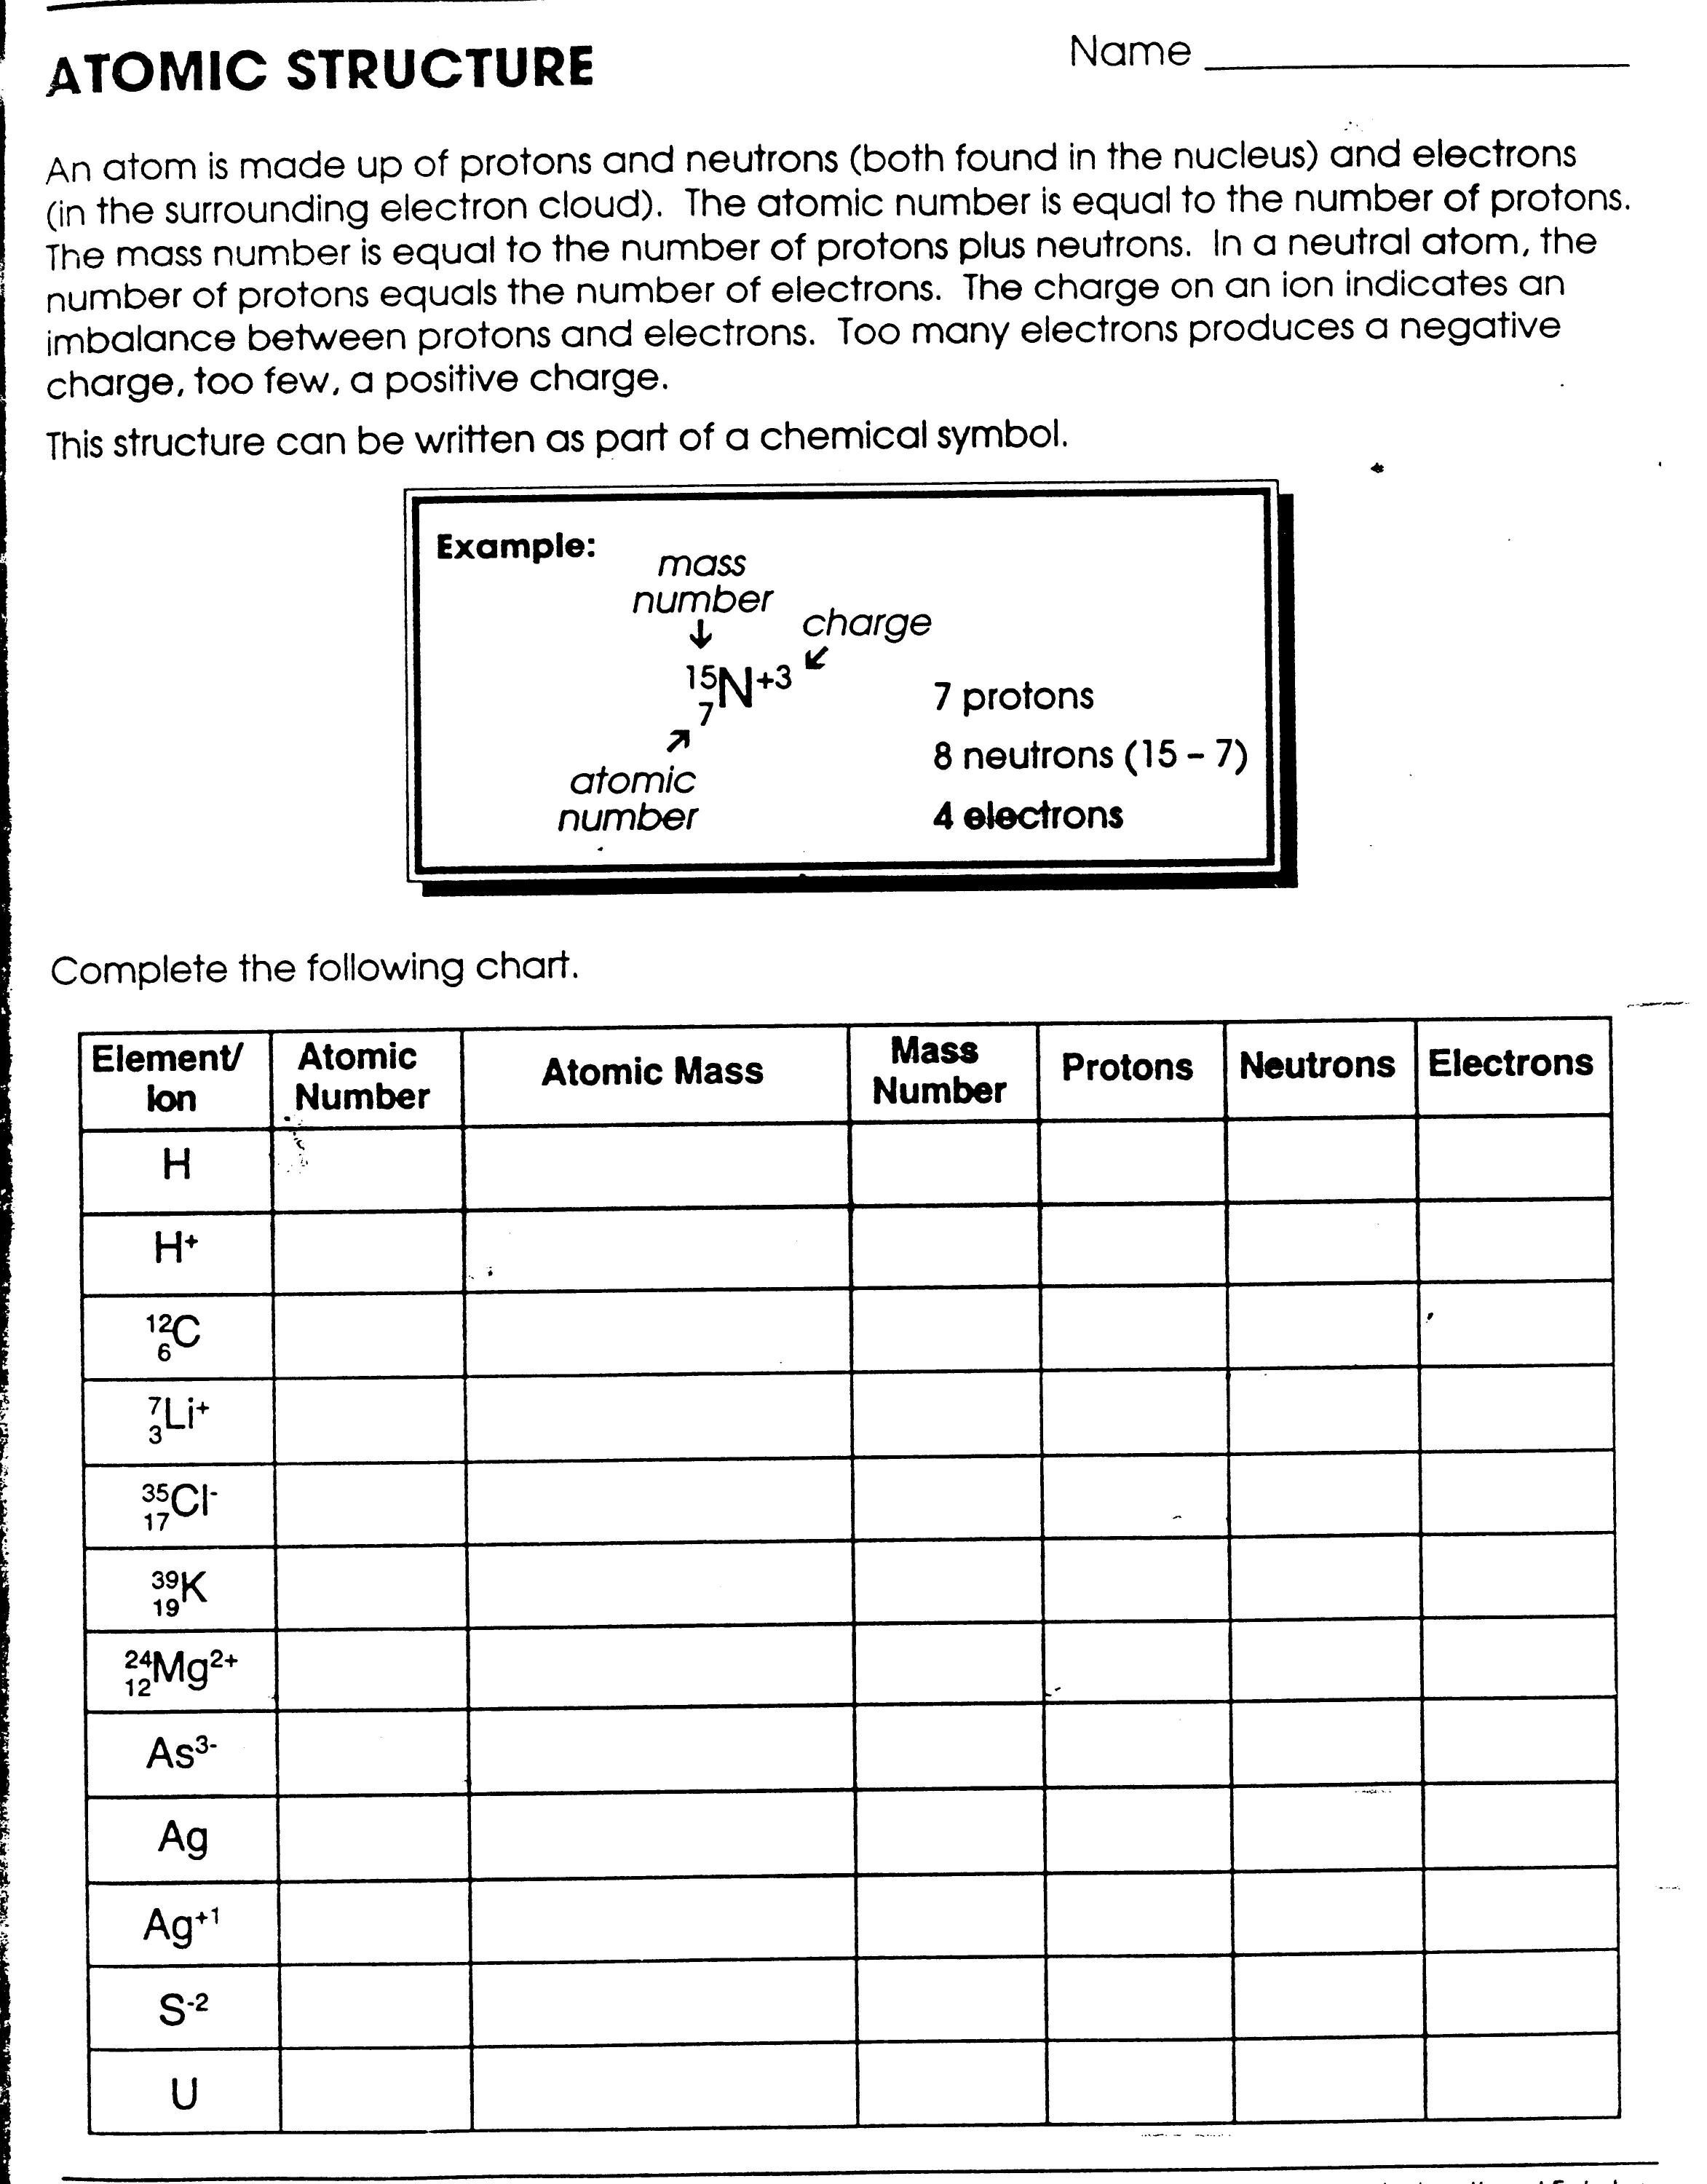 Atomic Structure Practice 1 Worksheet Answer Key